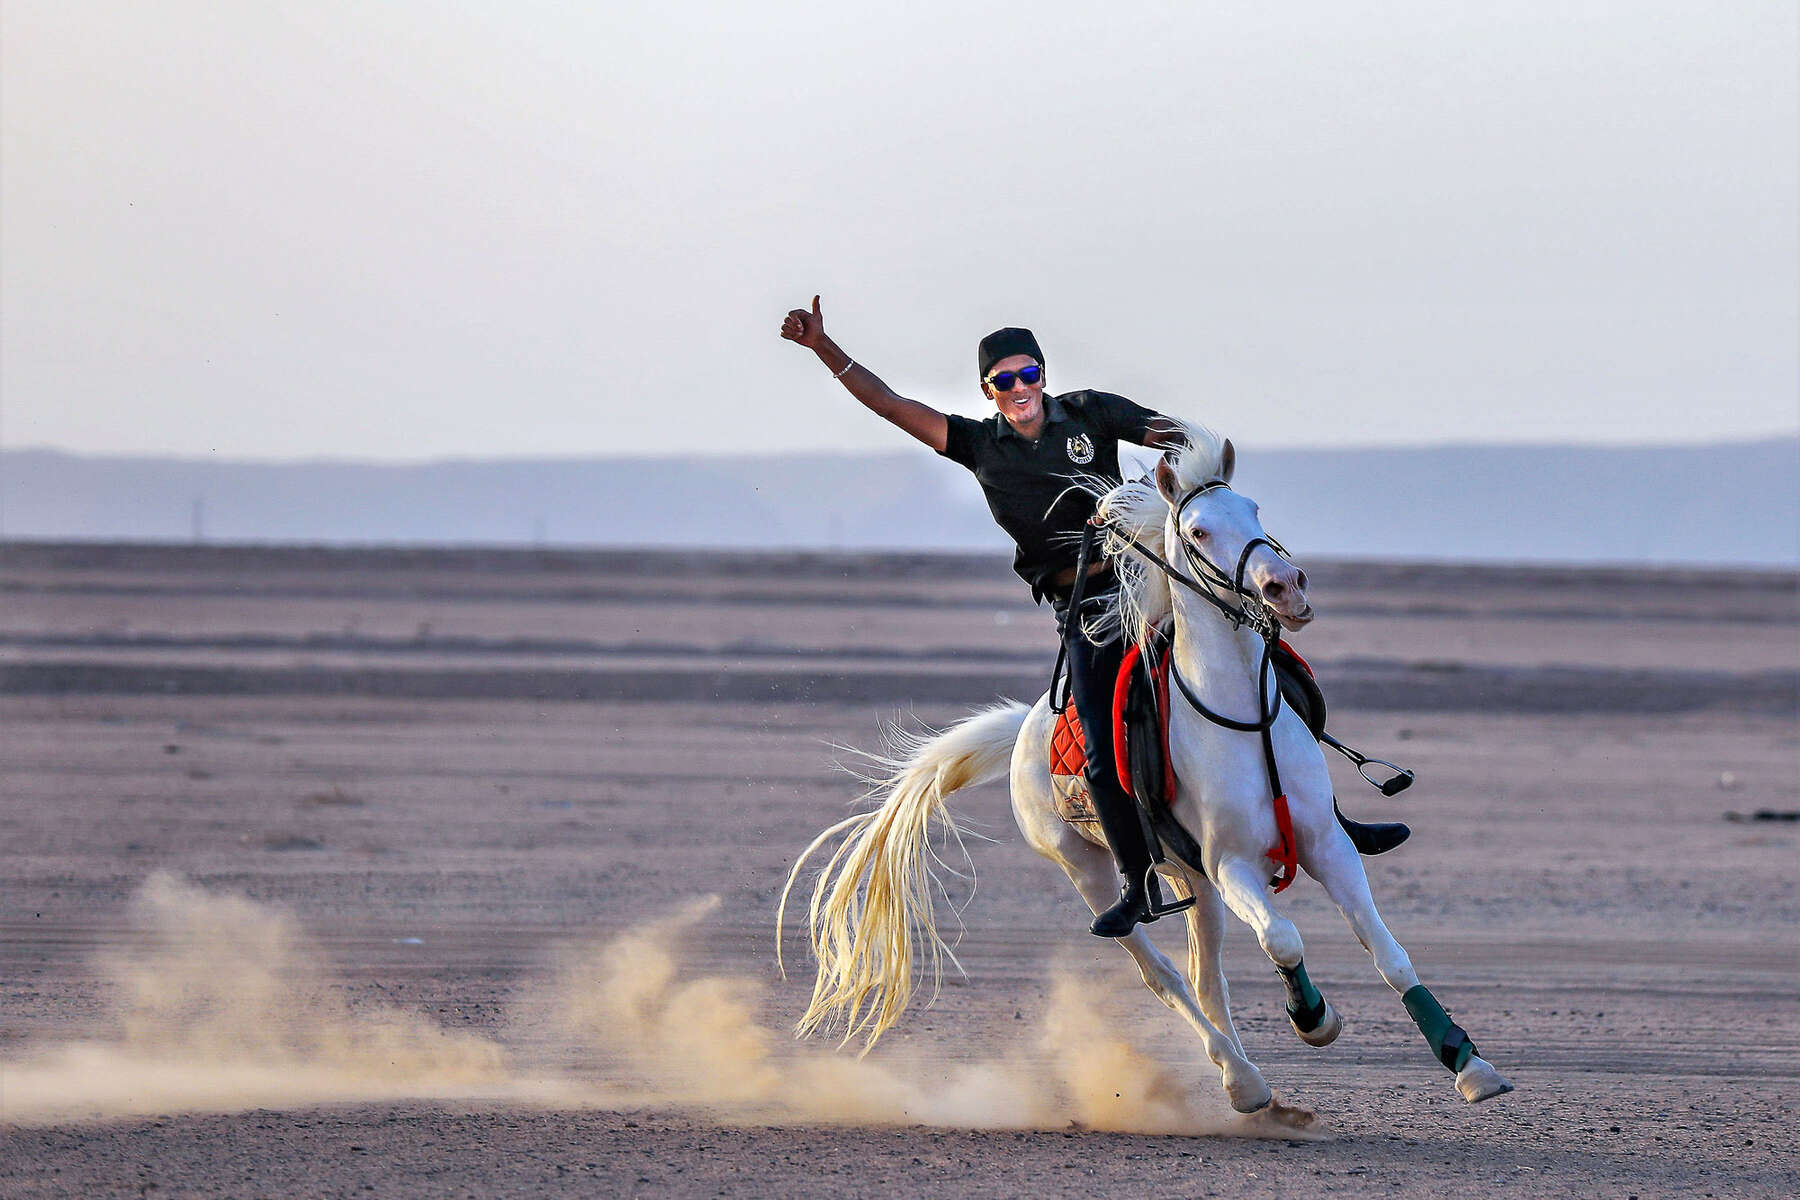 Rider galloping in the Egypt desert